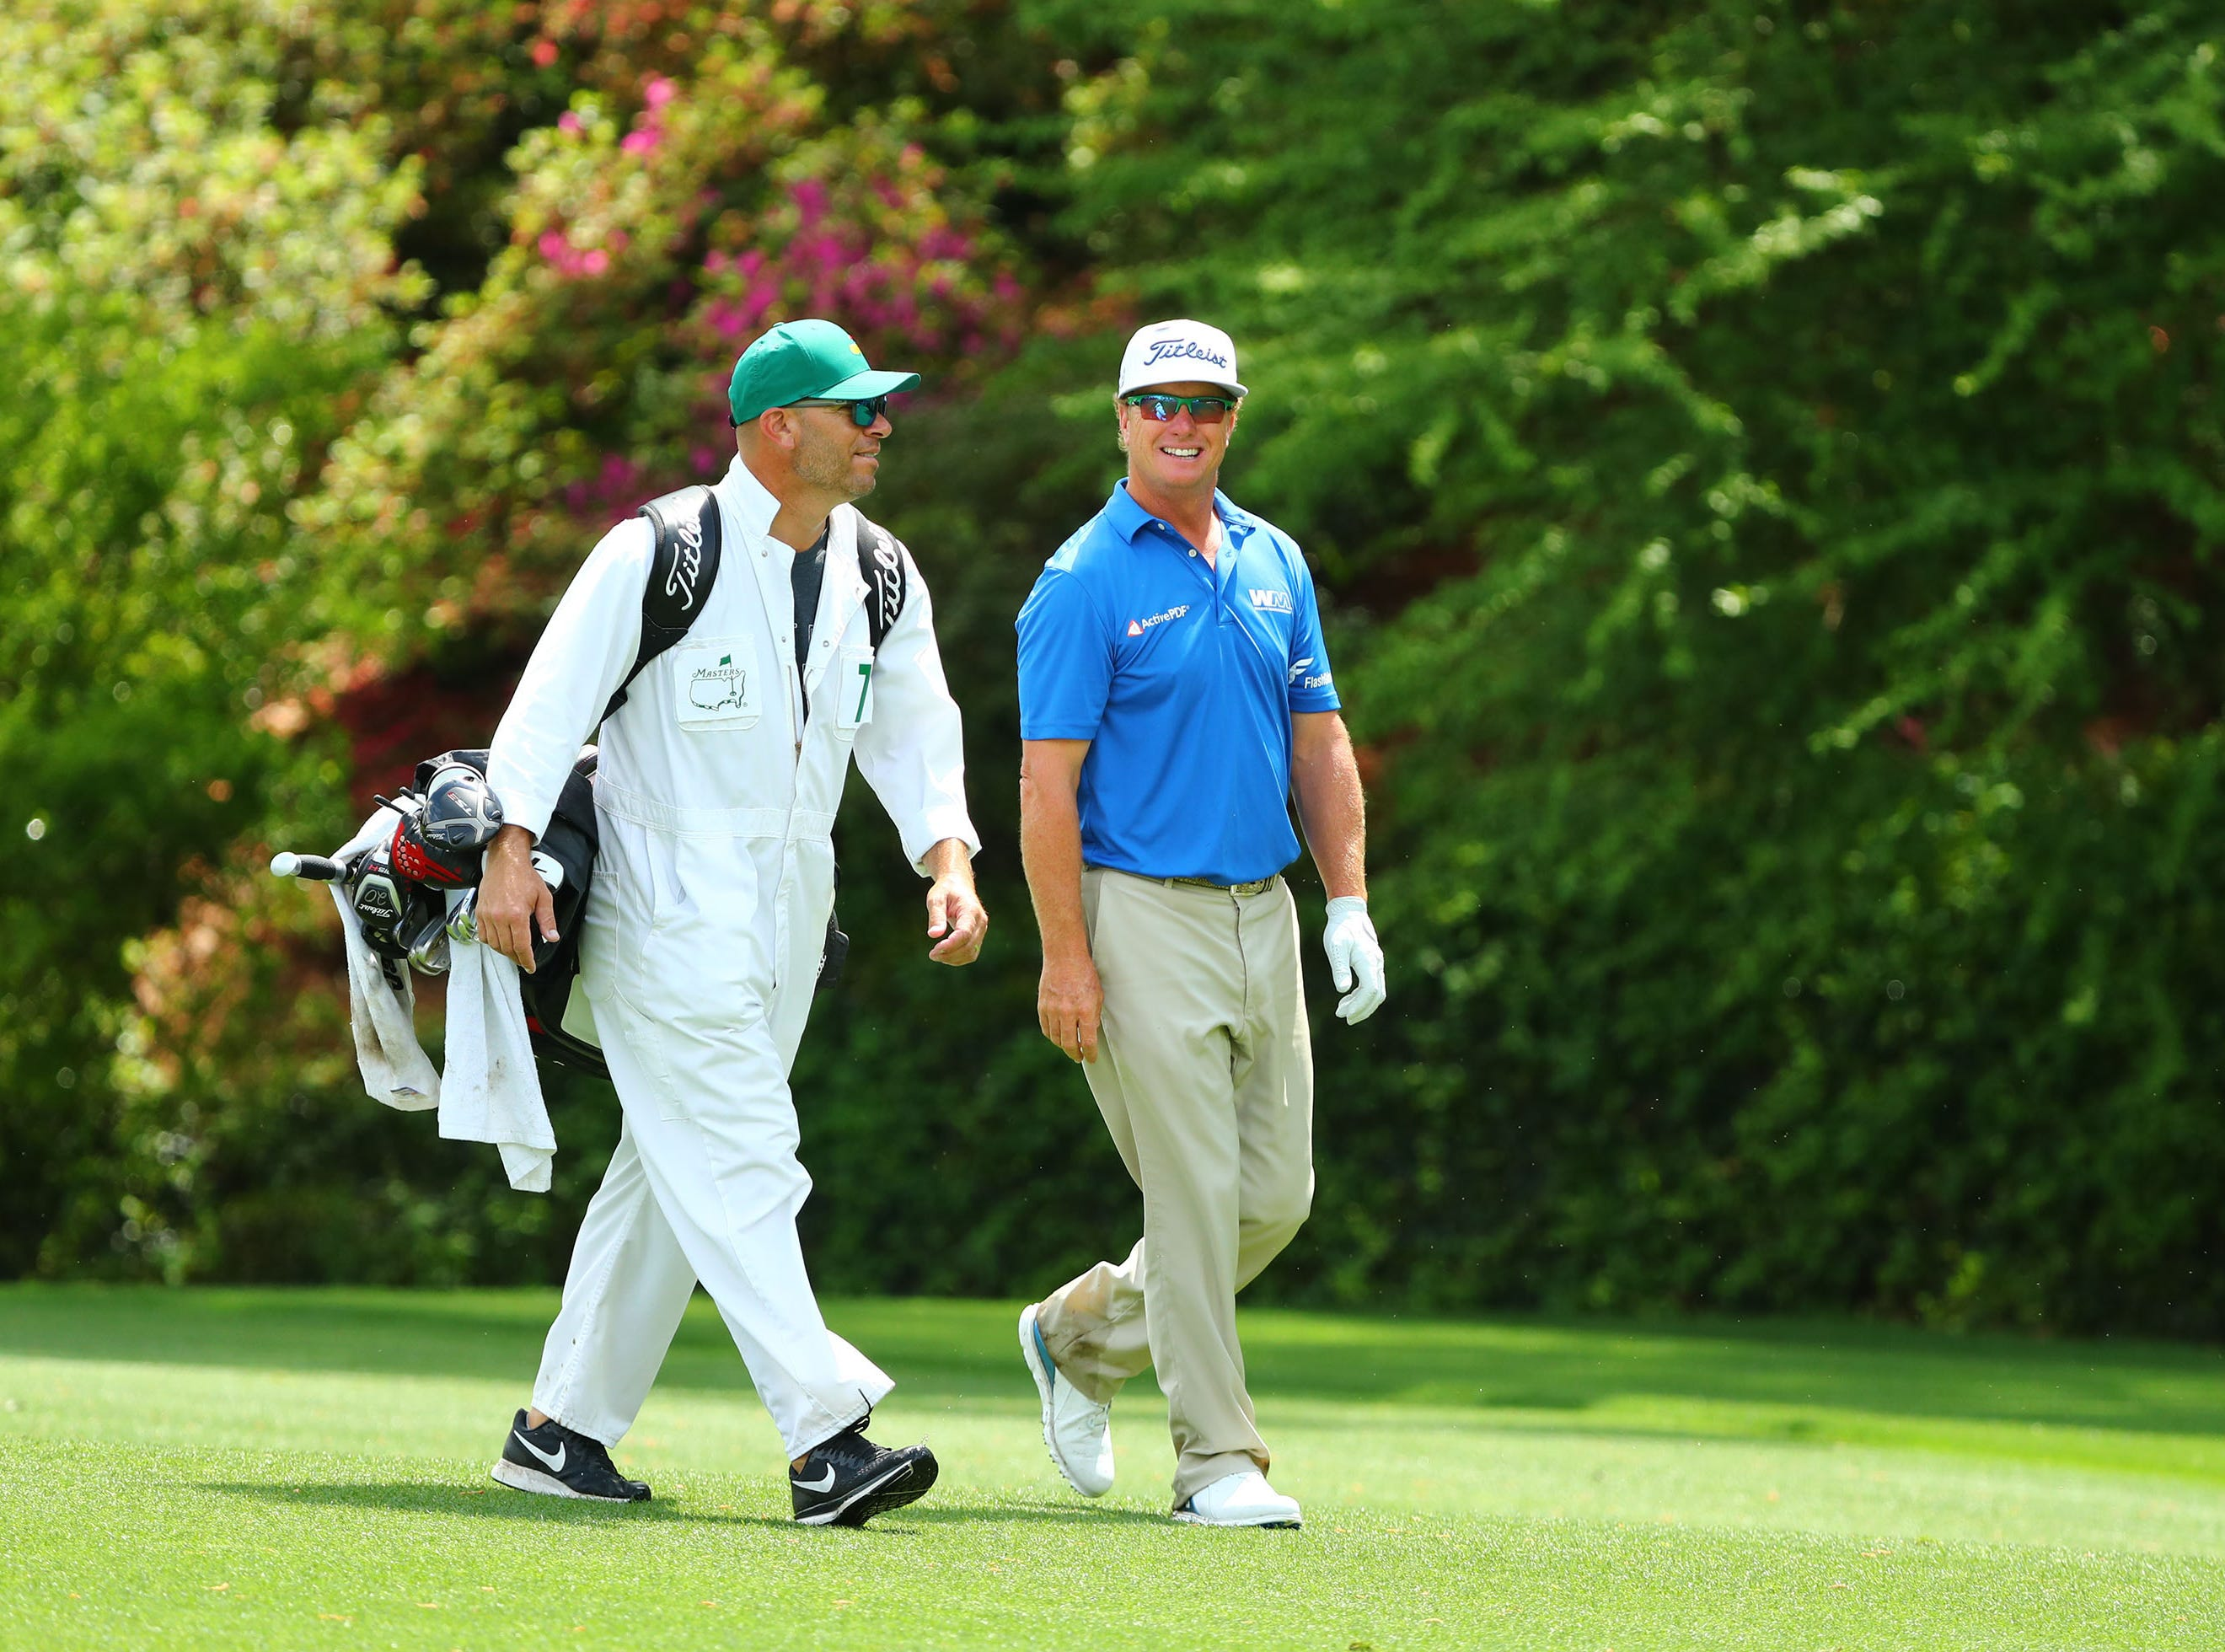 Apr 9, 2019; Augusta, GA, USA; Charley Hoffman and caddie Andy Barnes walk down the 13th fairway during a practice round for The Masters golf tournament at Augusta National Golf Club. Mandatory Credit: Rob Schumacher-USA TODAY Sports